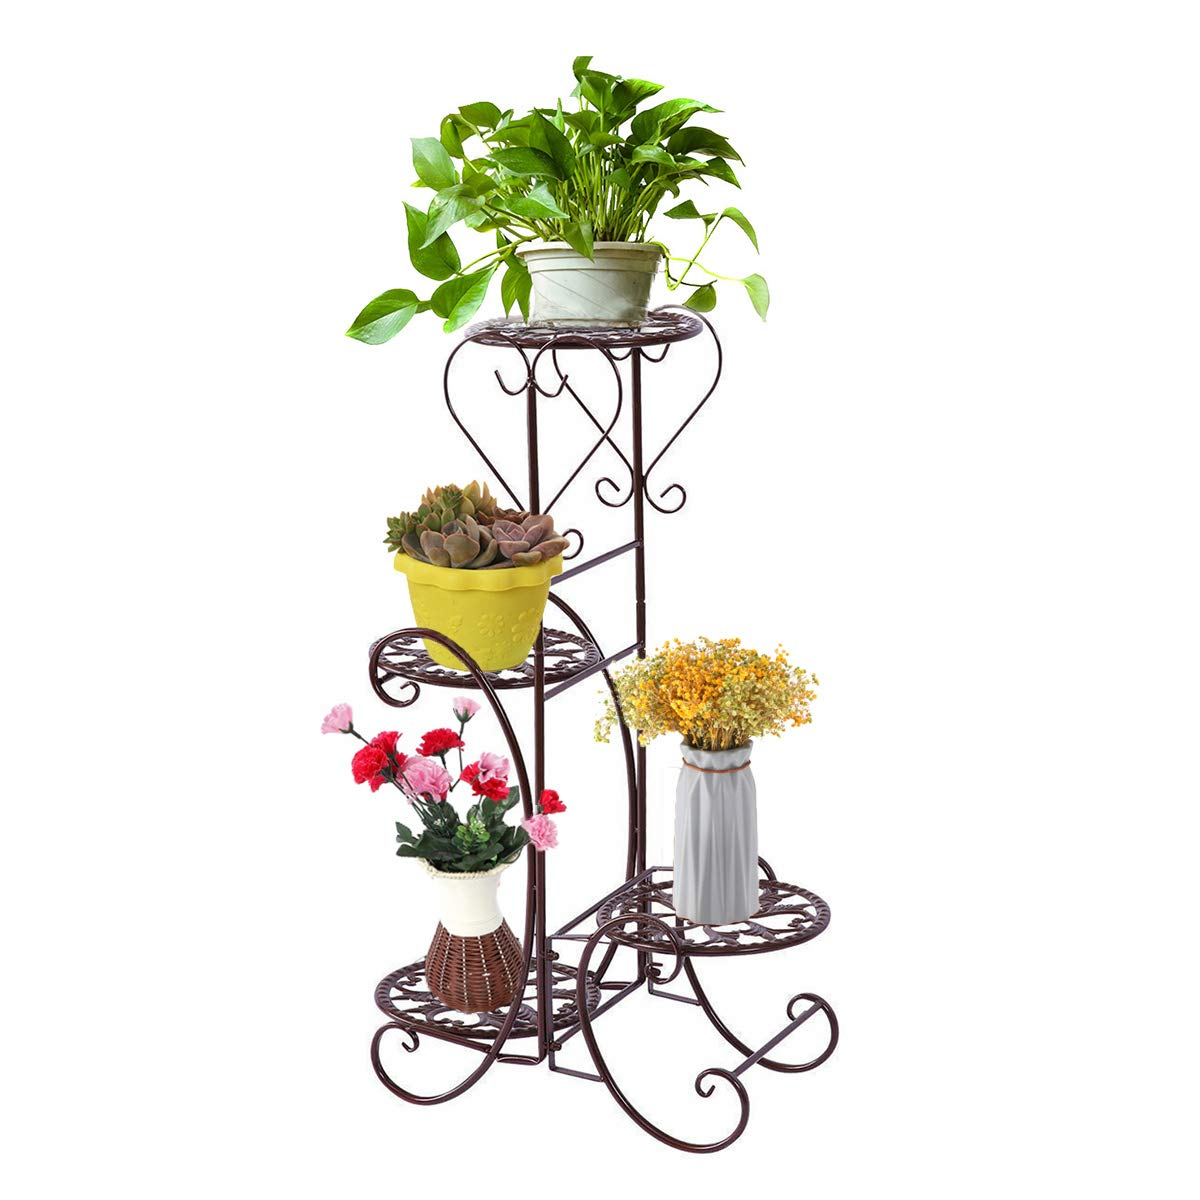 JOANNA'S HOME 4 Tier Outdoor Plant Stand Metal Flower Stand Flower Stand for Living Room Garden Balony Porch Decoration - Brown